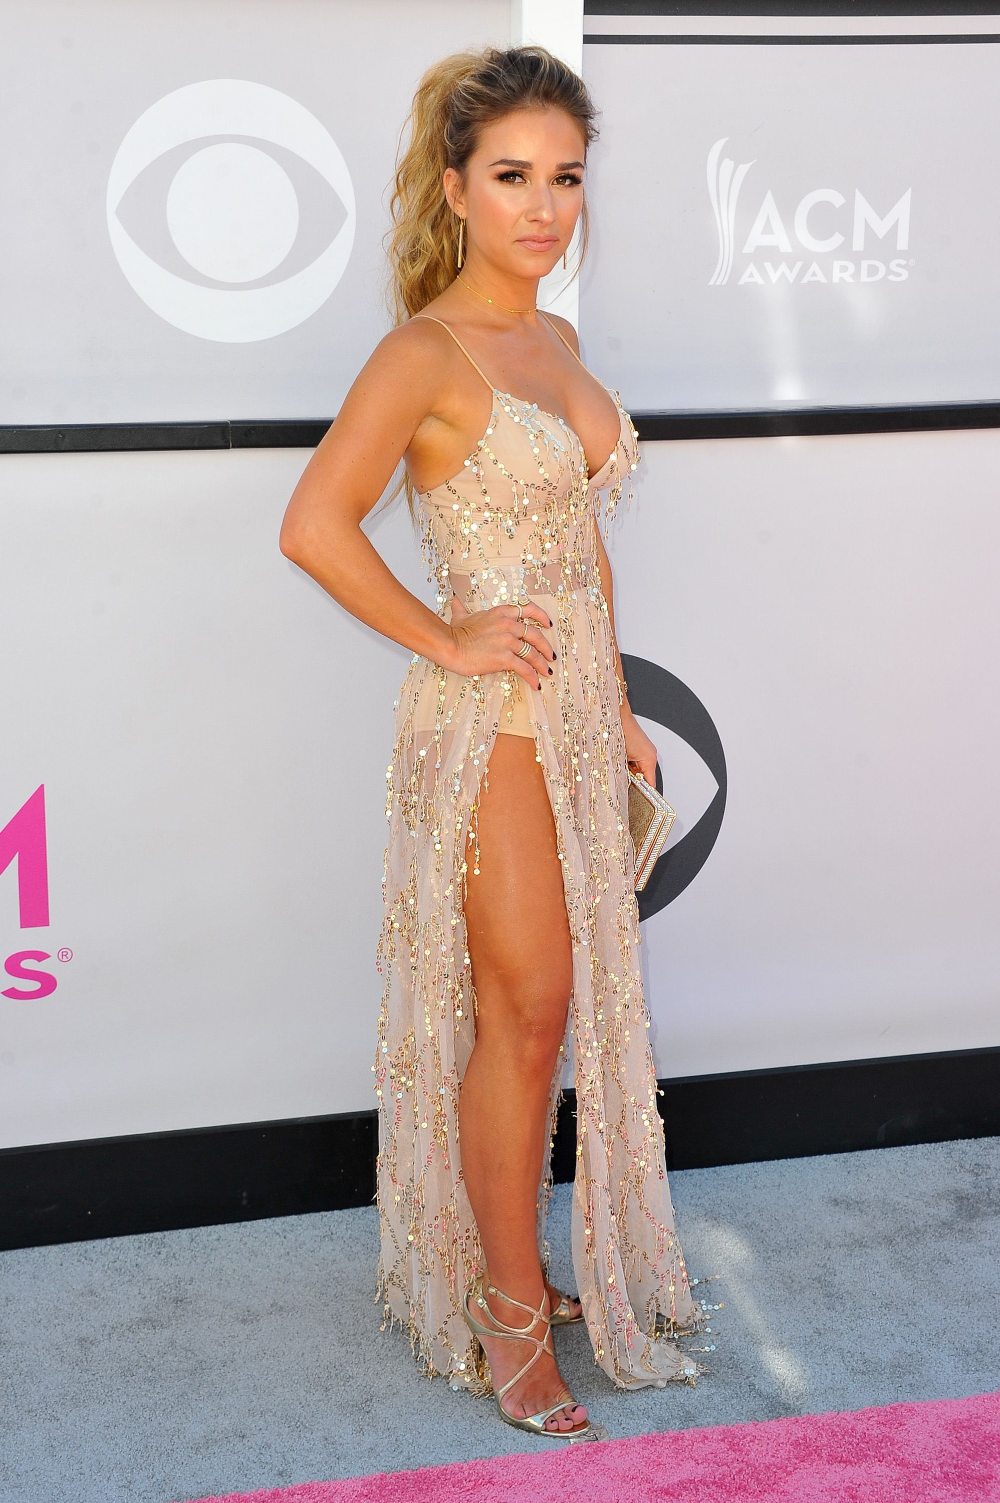 Academy of Country Music Awards Wildest Outfits Ever - ACM